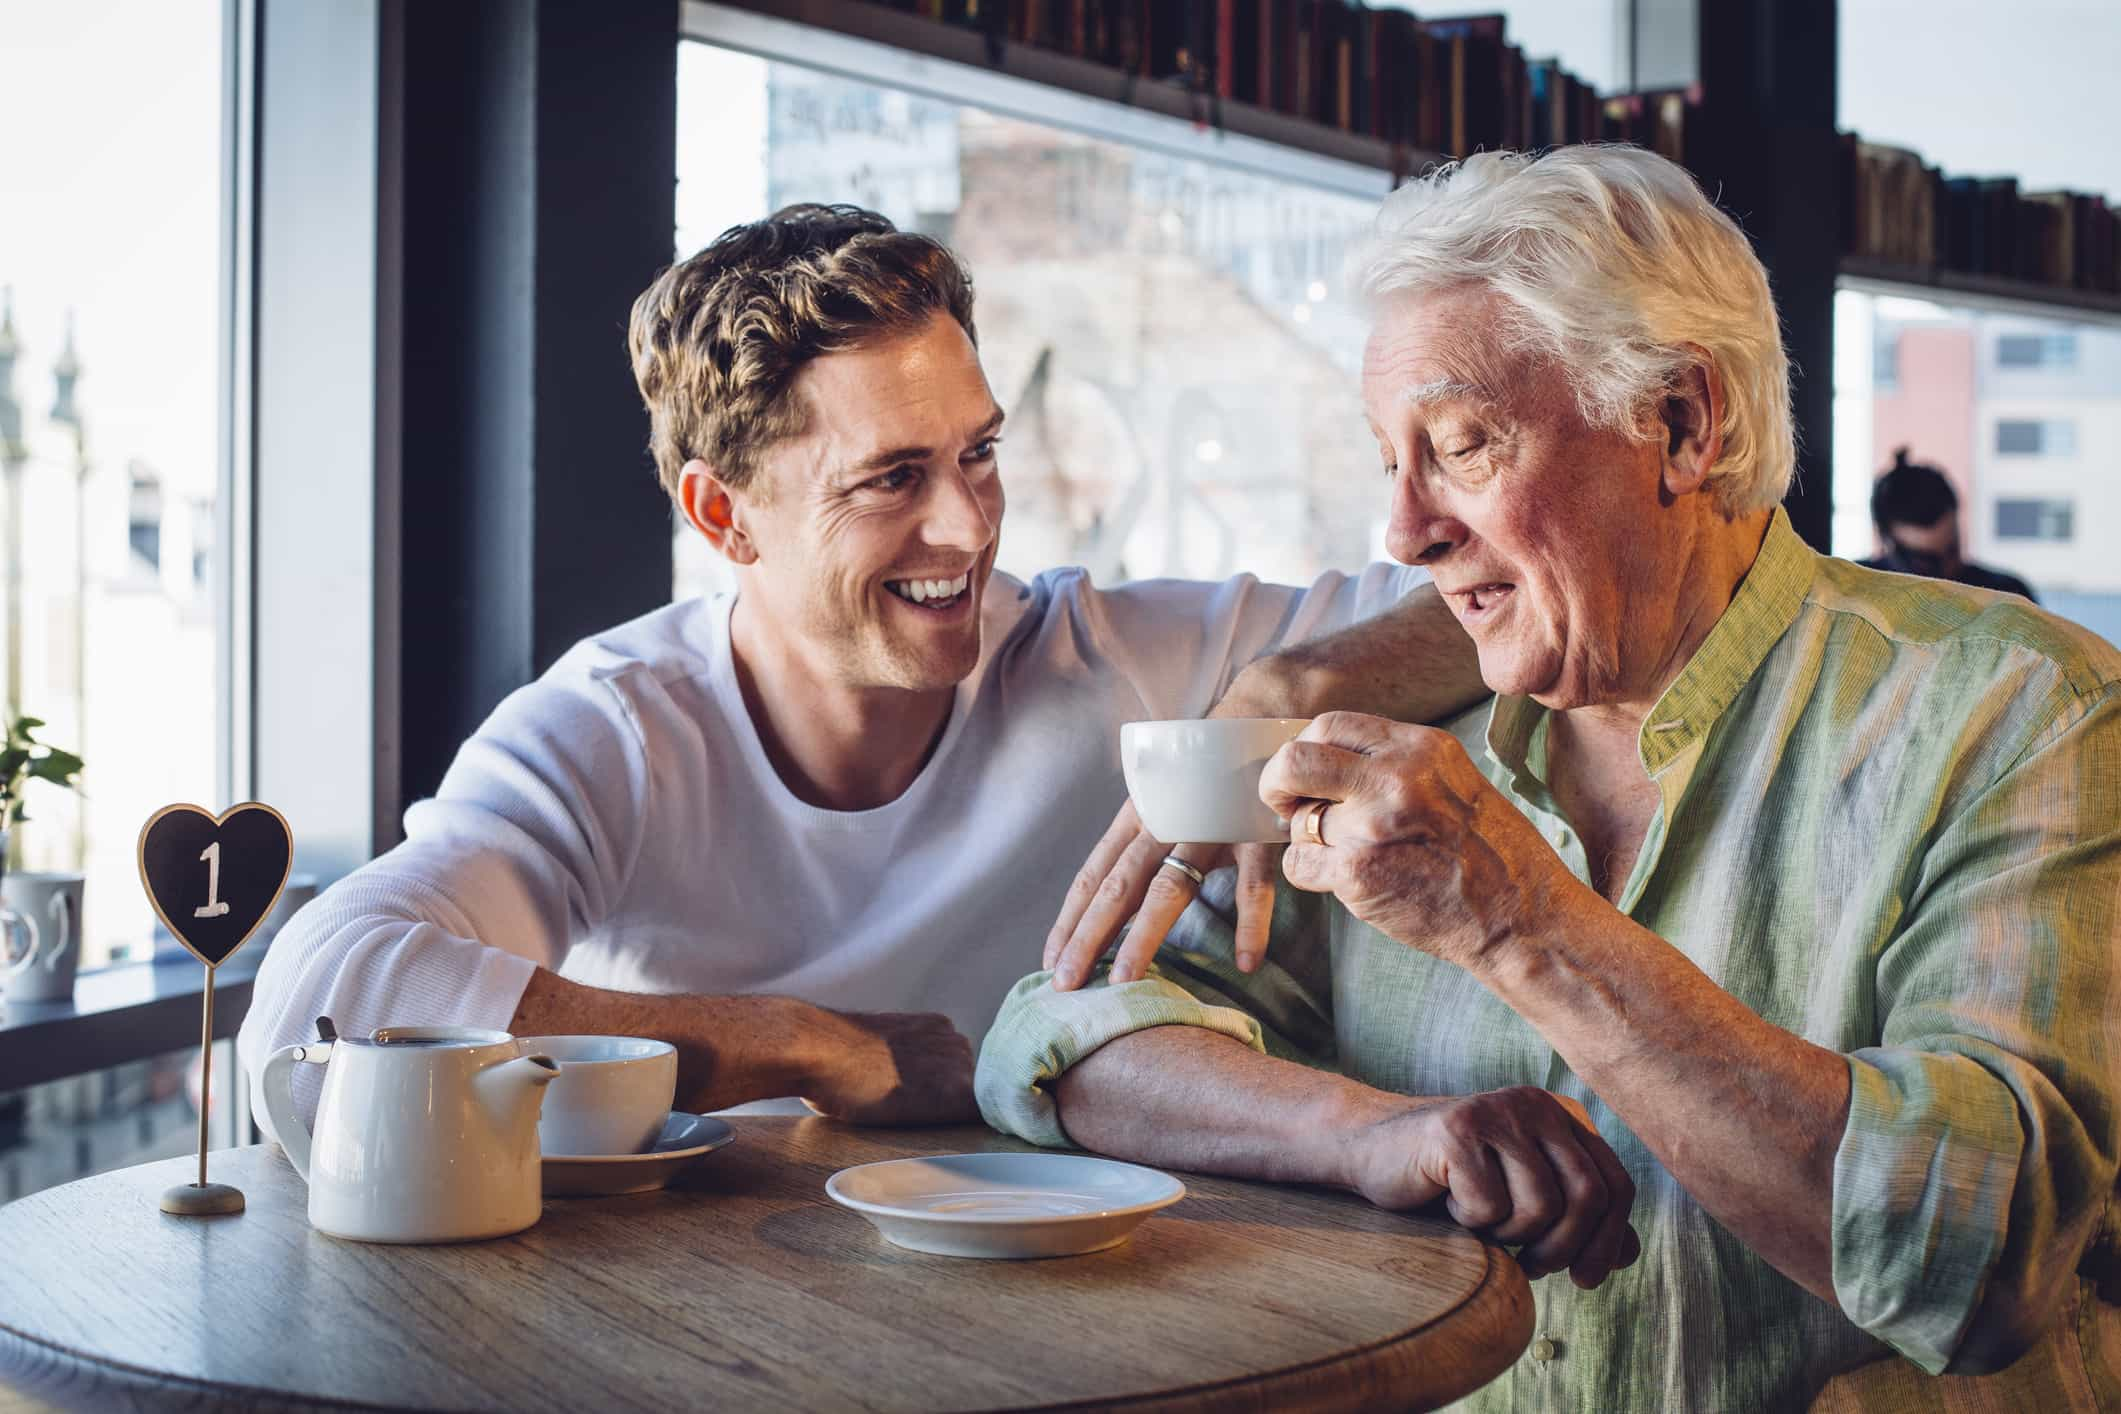 Father and adult son enjoying coffee together